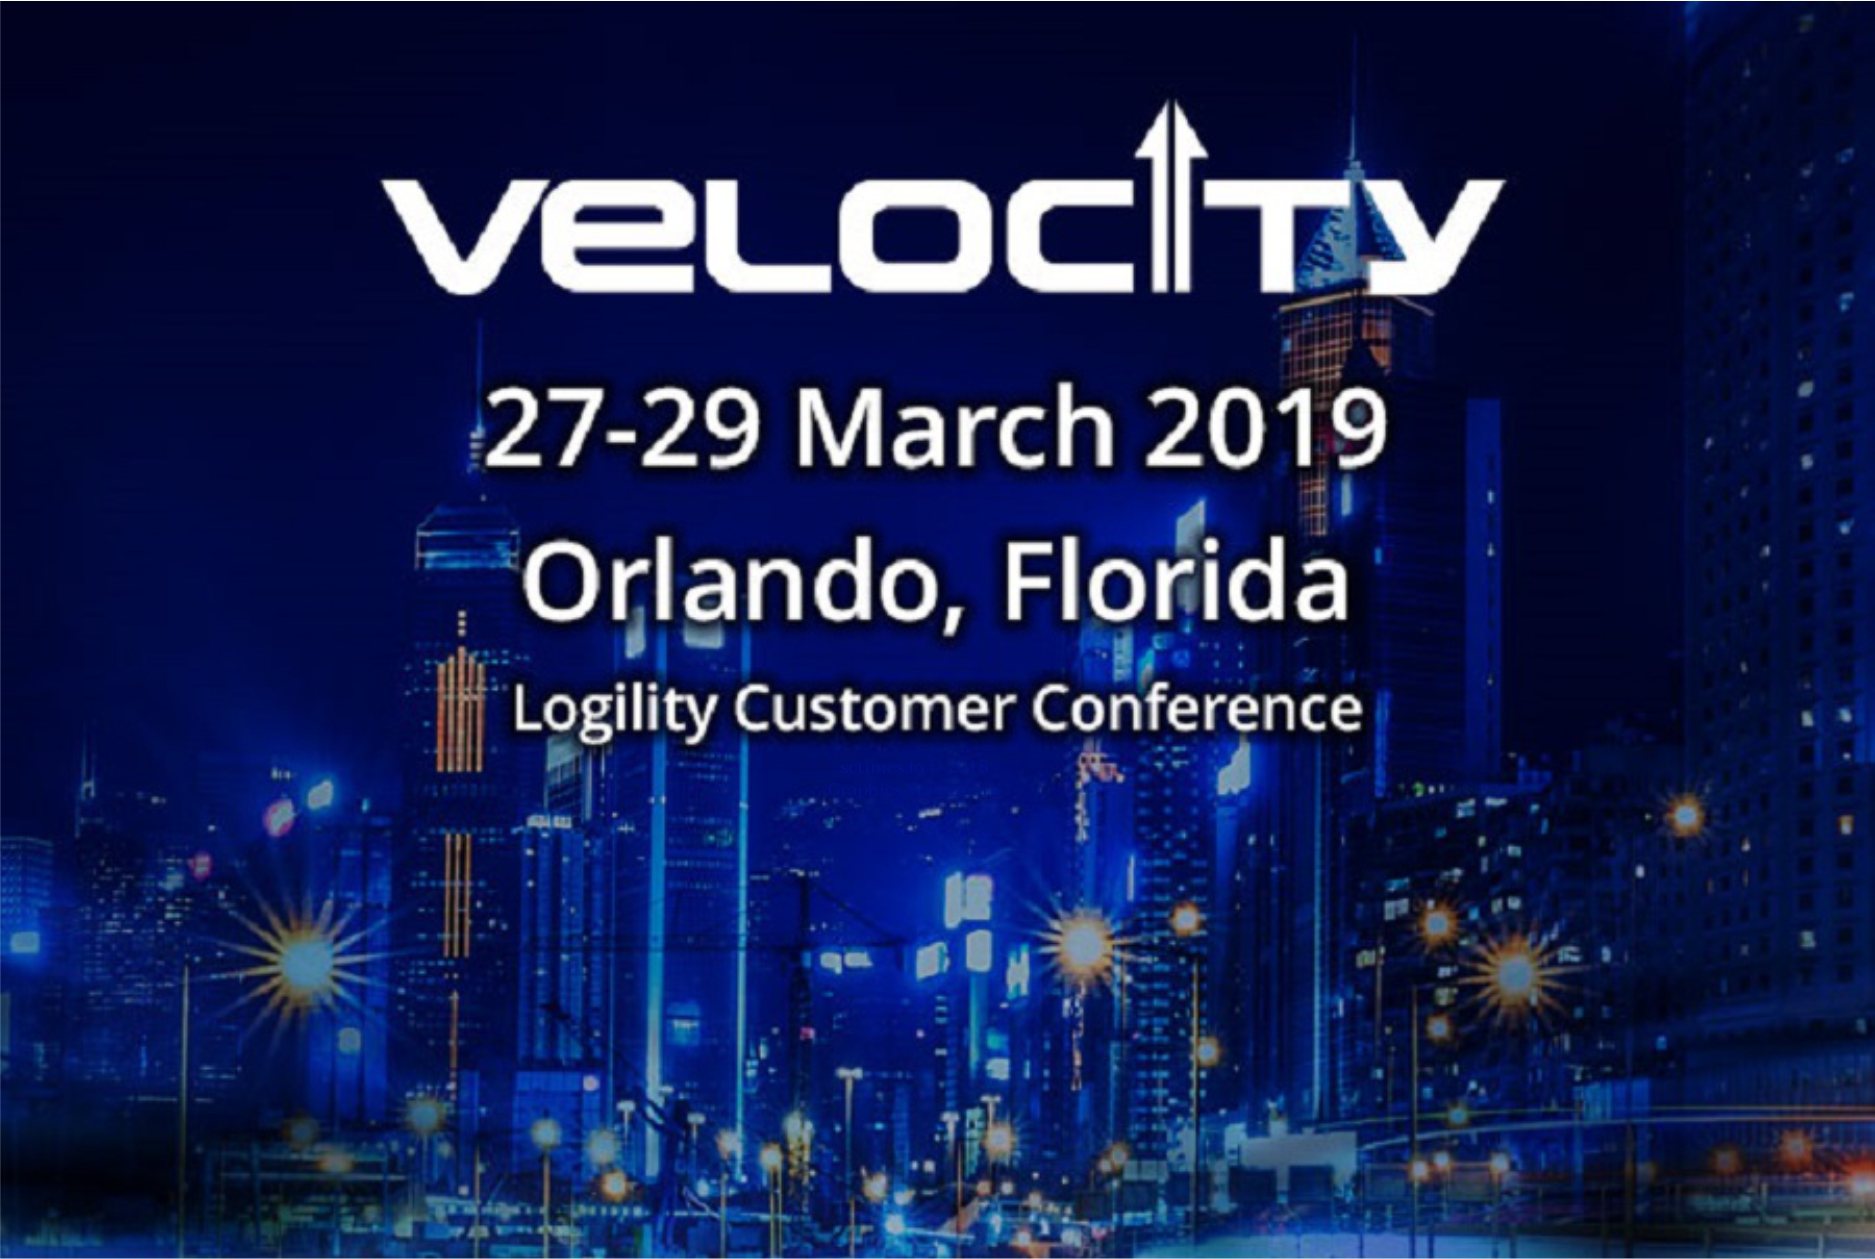 https://itsupplychain.com/wp-content/uploads/2018/09/Logility-velocity-events-and-conference-page-image_2.jpg